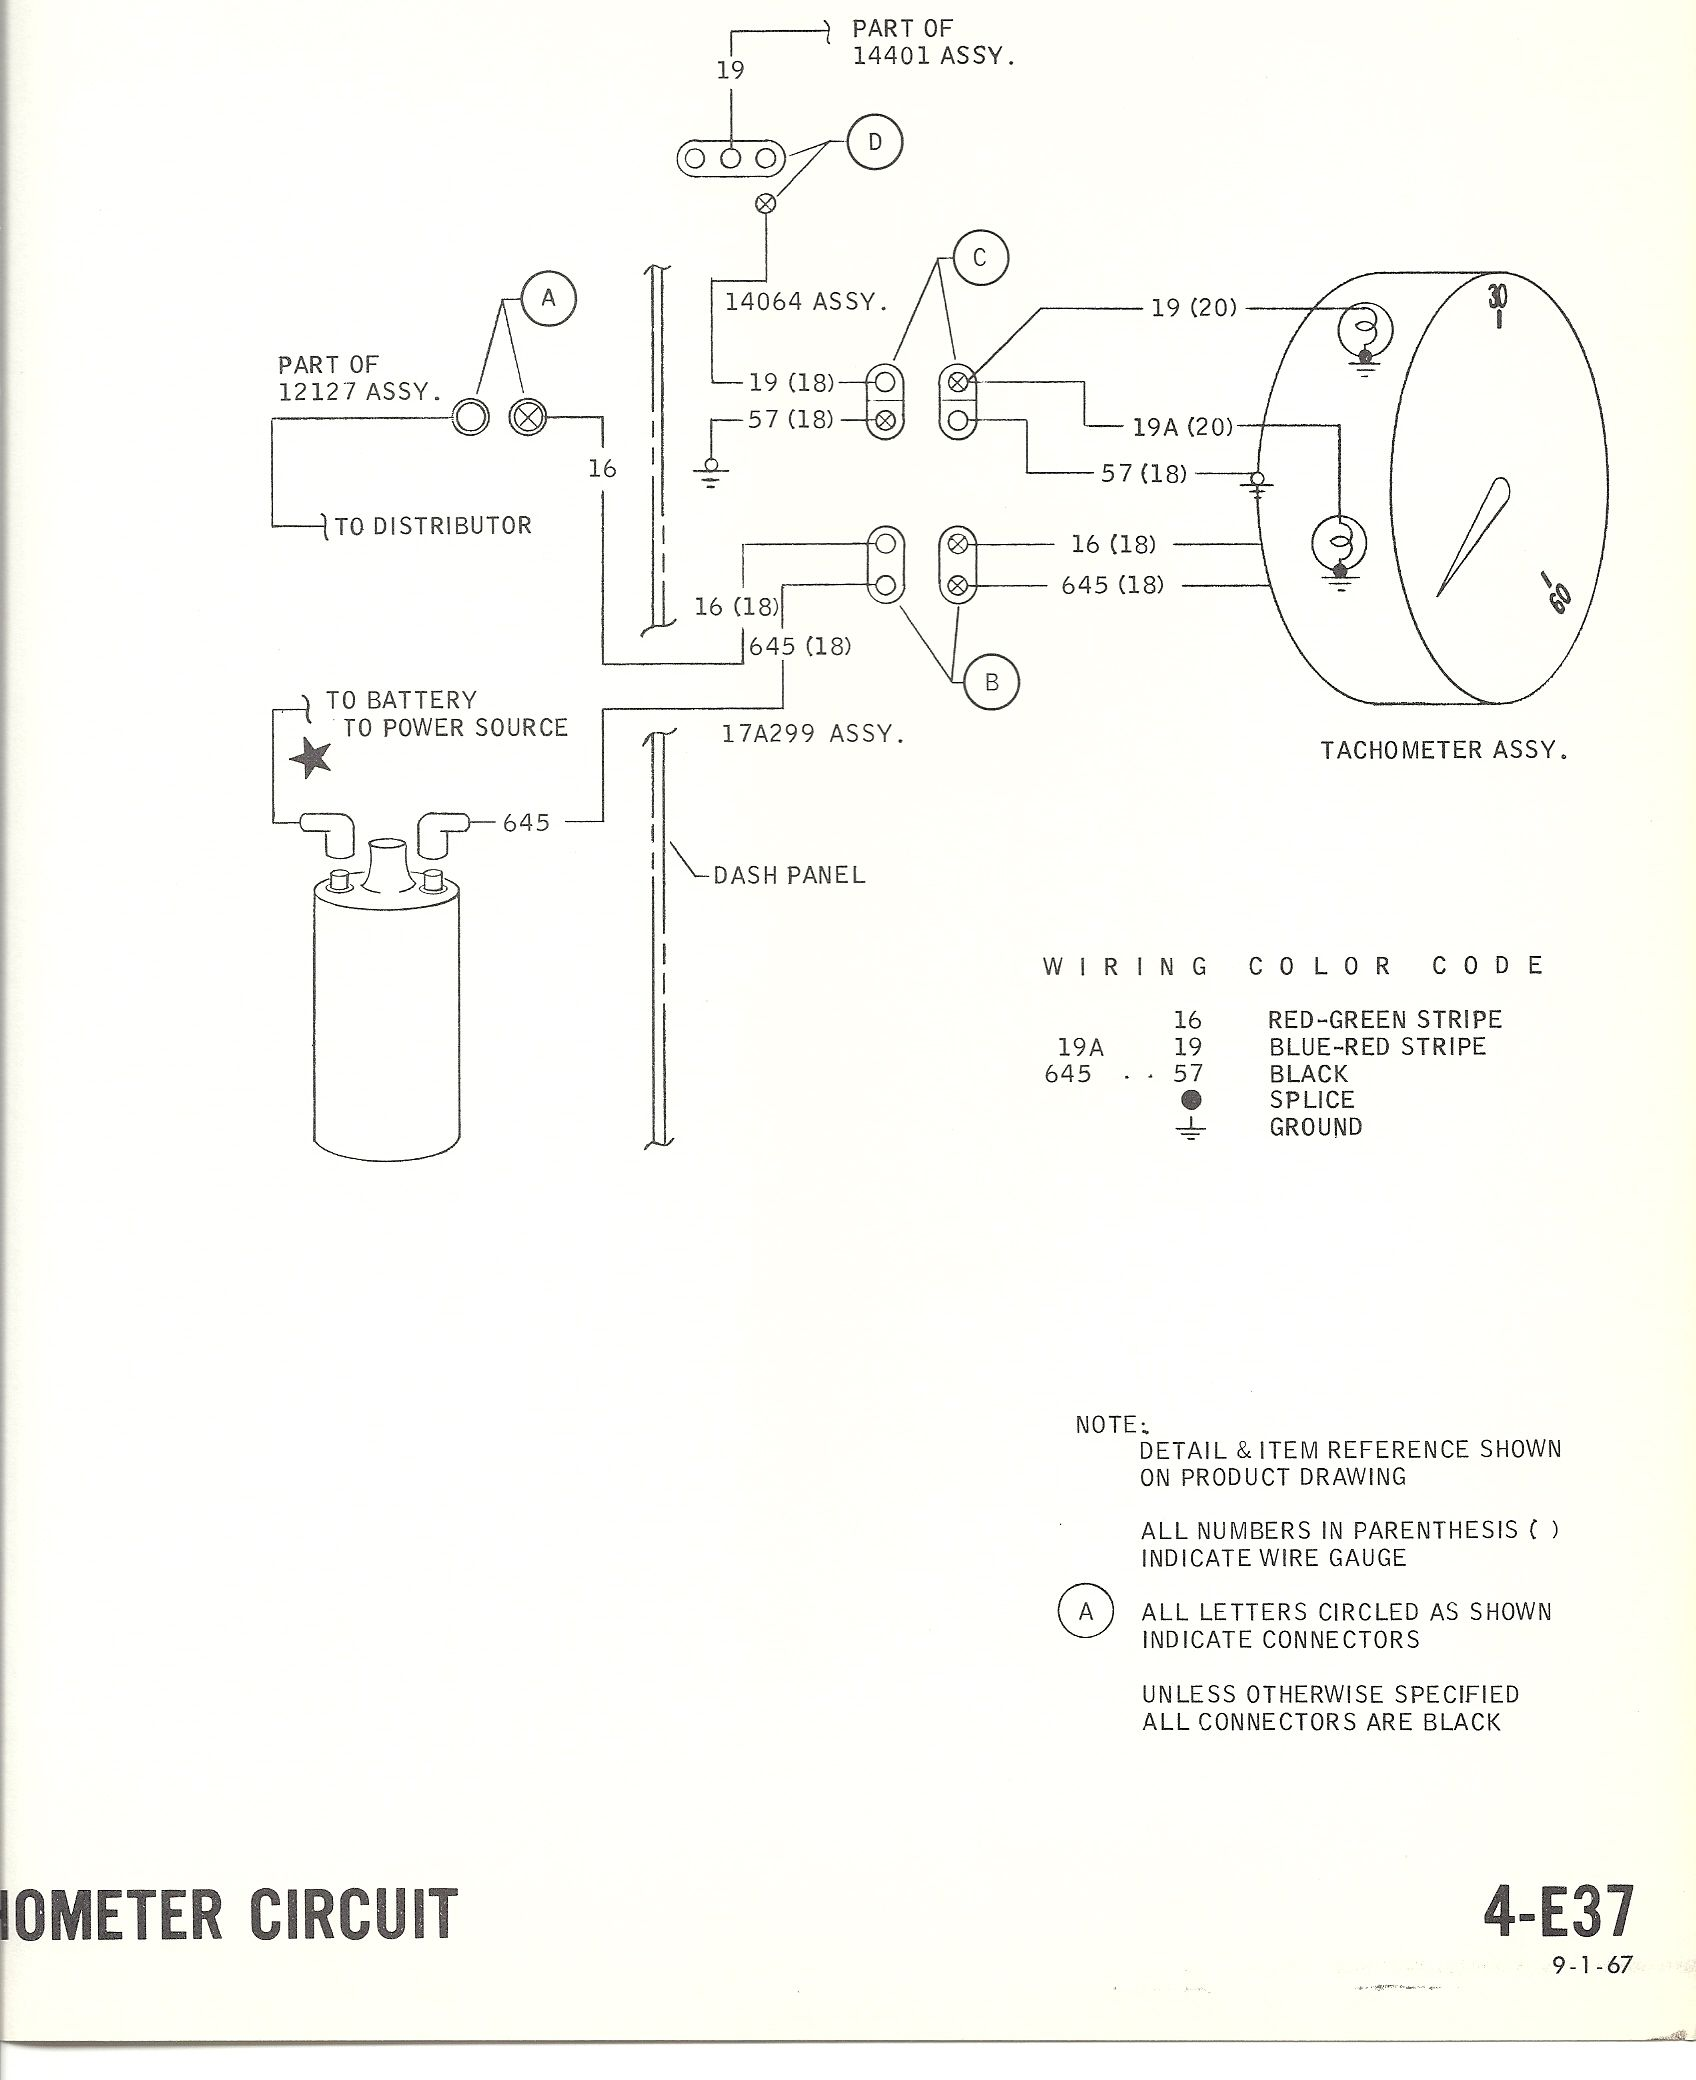 2b2f8e488a4c6a6b870c00f5af30de6c 1967 mustang wiring to tachometer 1968 mustang wiring 1969 mustang color wiring diagram at panicattacktreatment.co